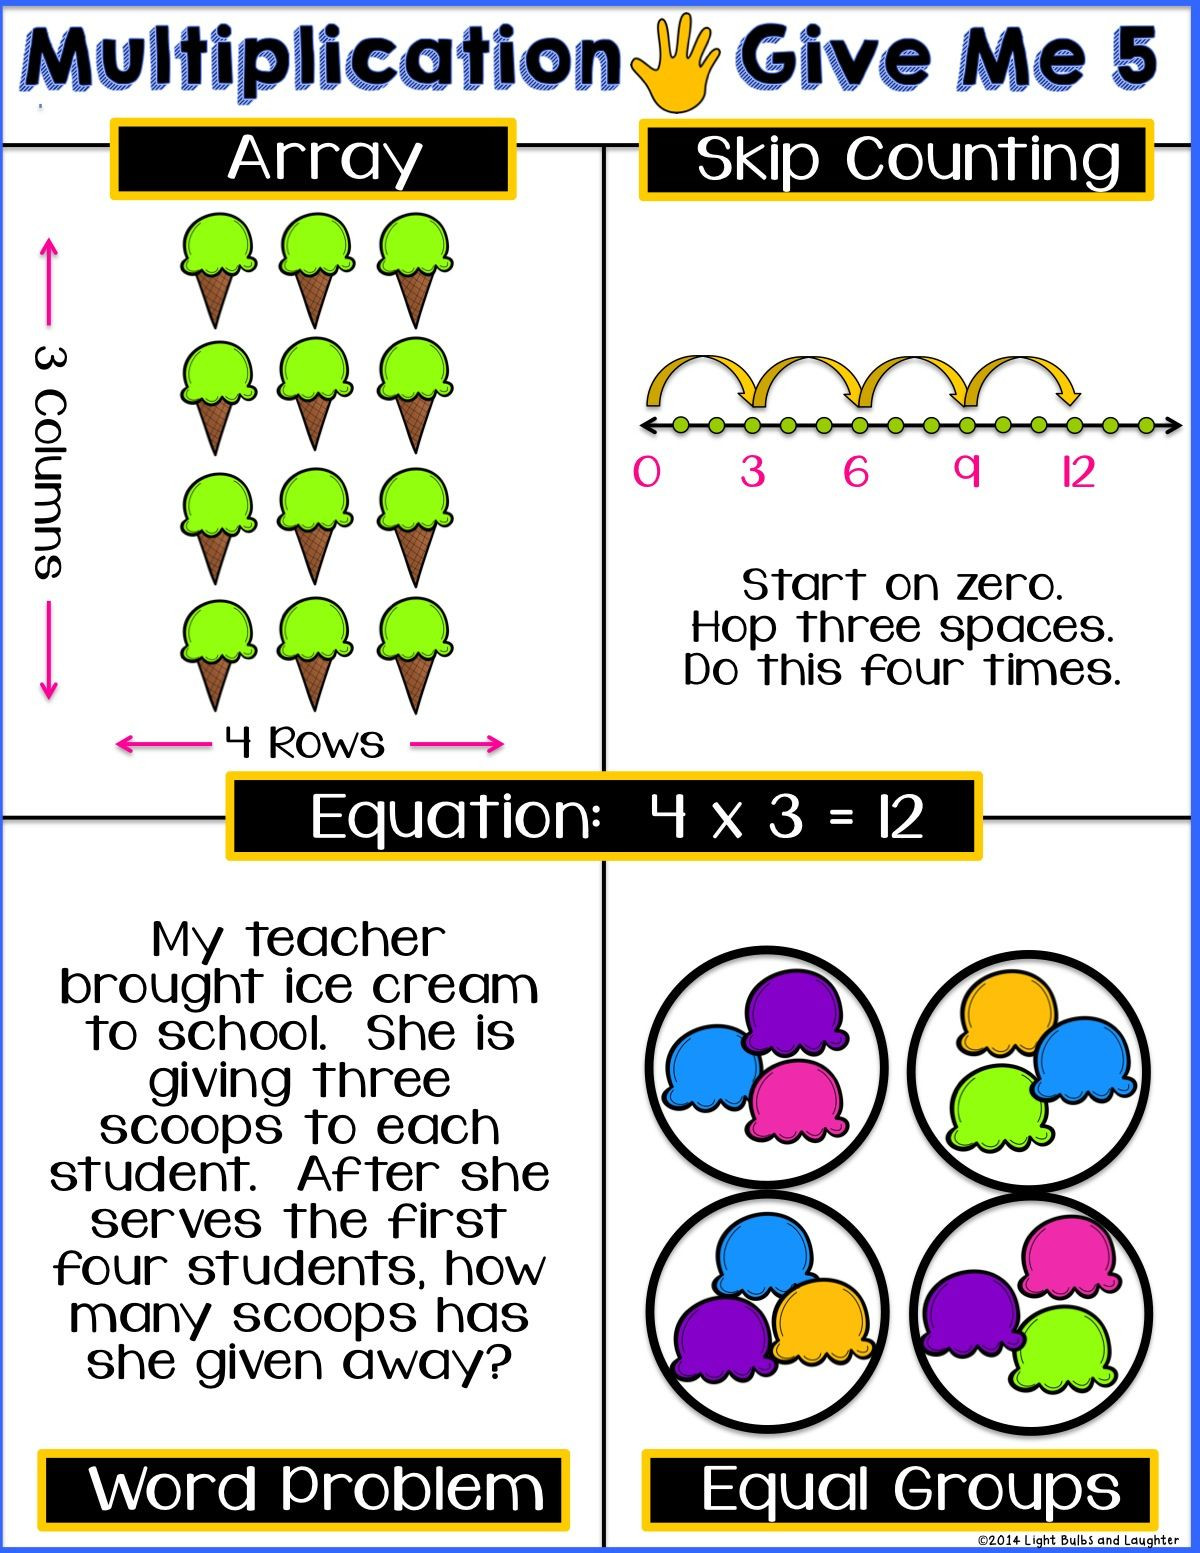 Array Math Worksheets Free Multiplication Give Me 5 Poster